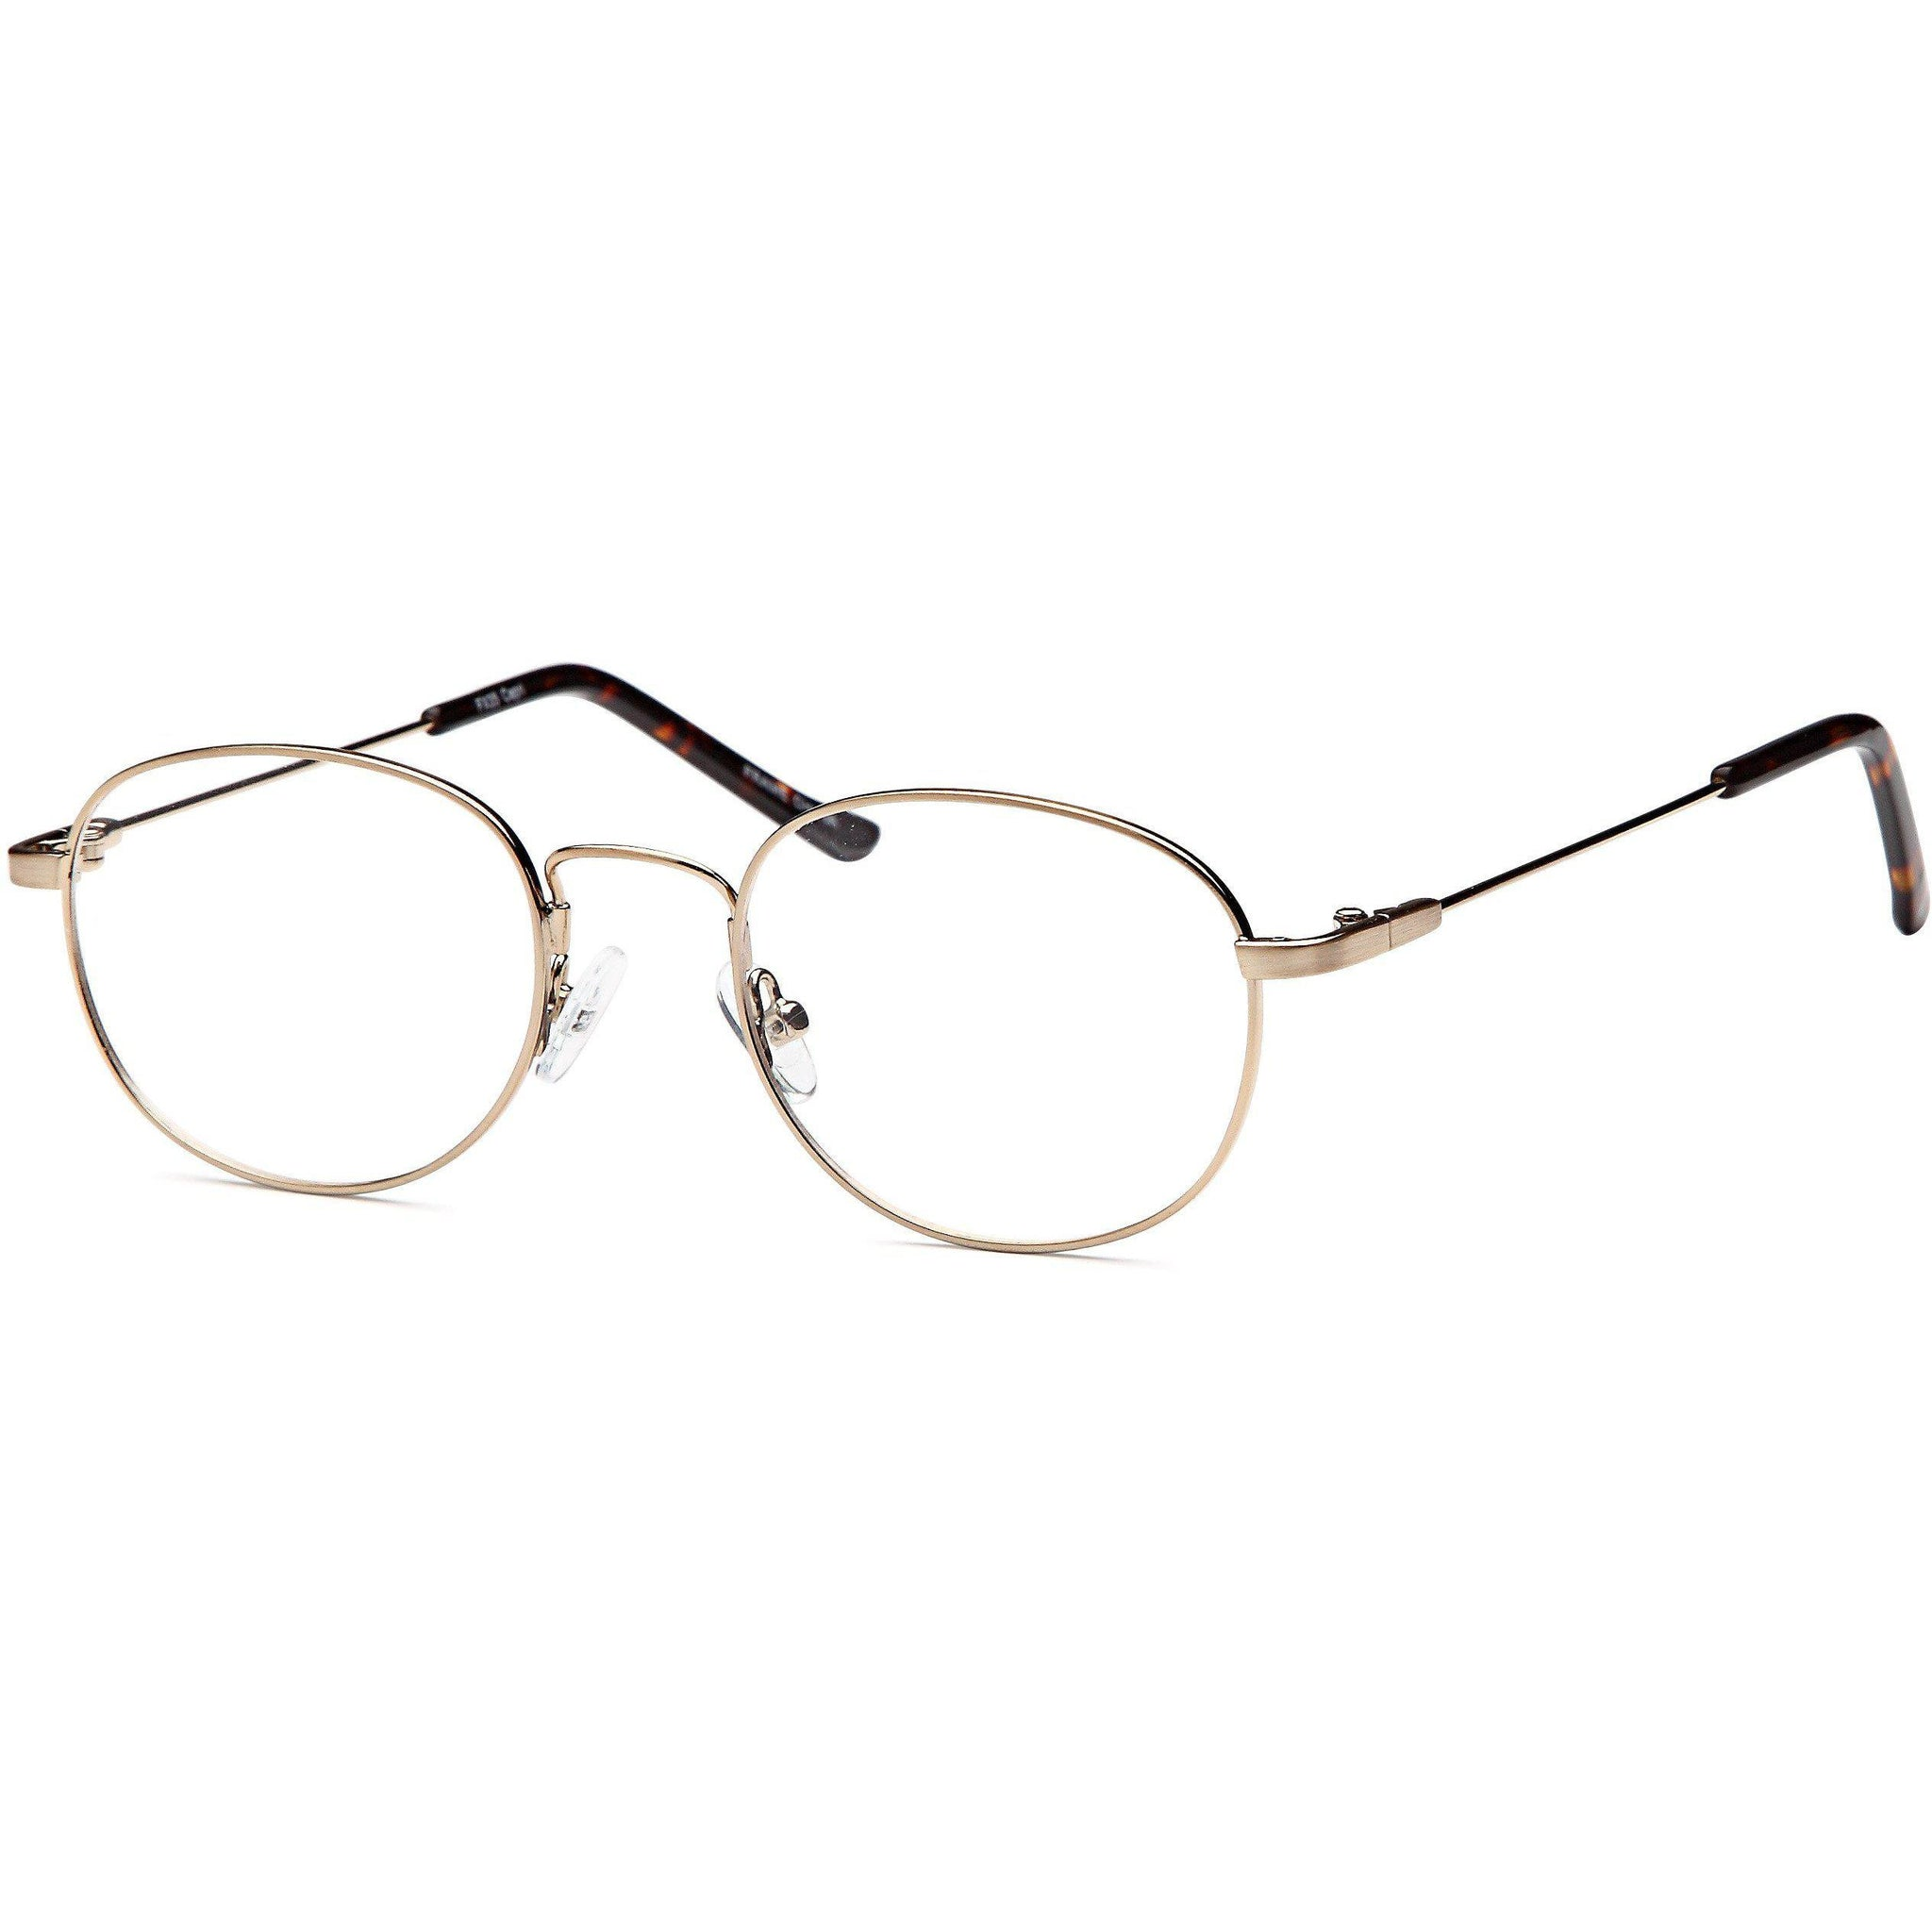 Titanium Prescription Glasses FX 35 Eyeglasses Frame